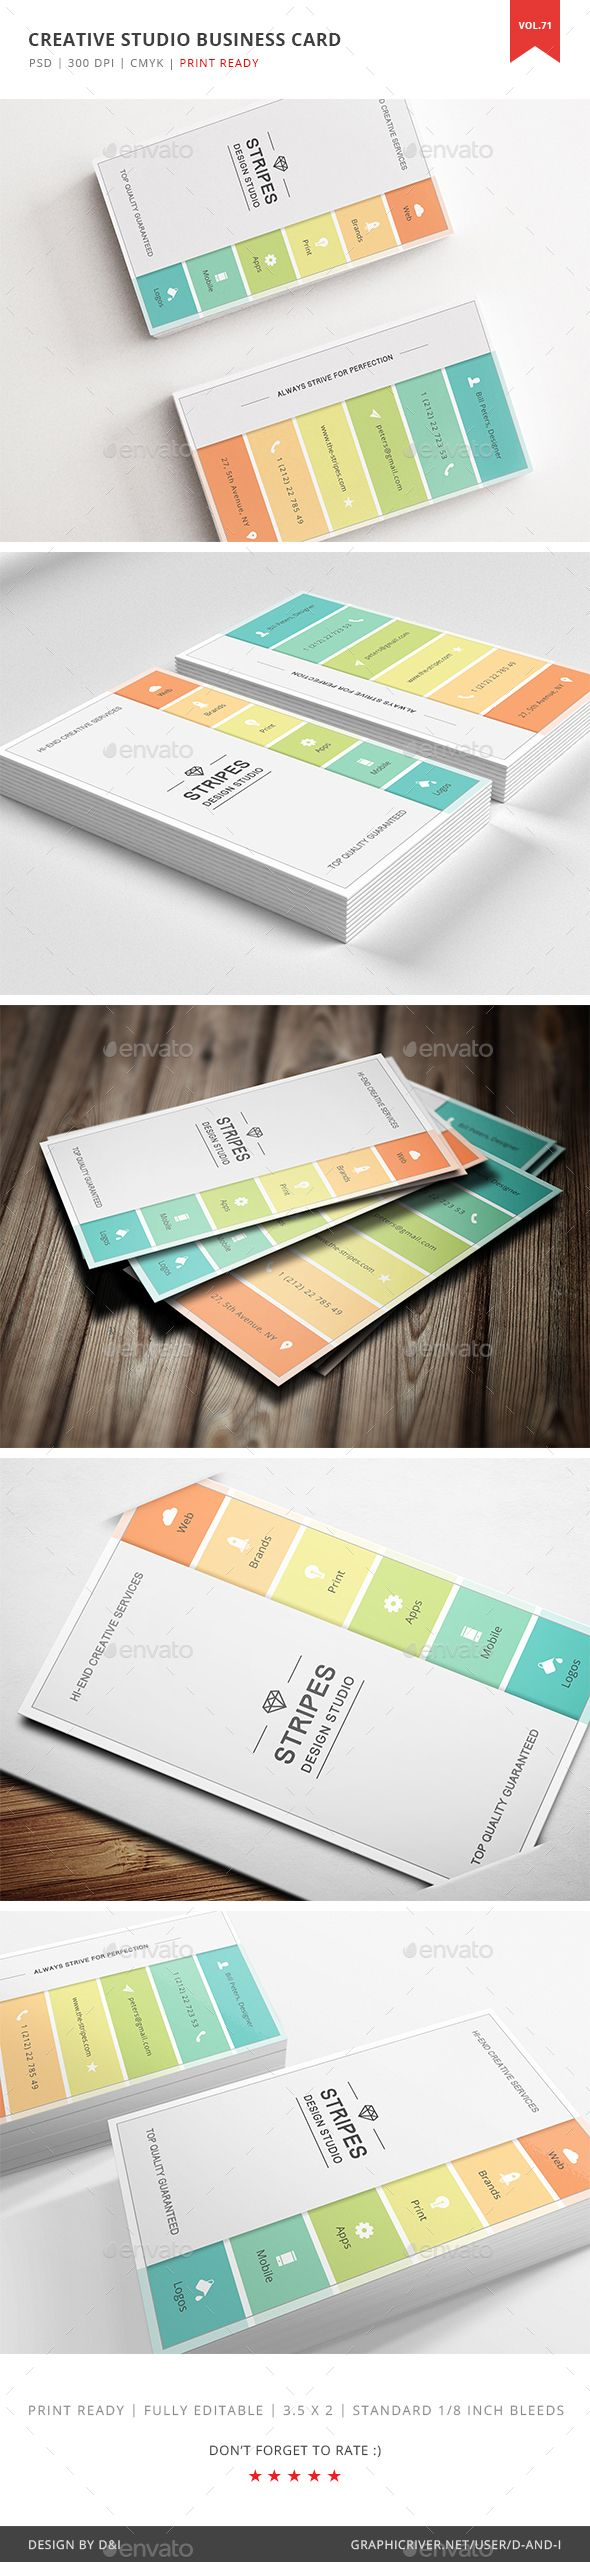 Creative Studio Business Card Template PSD. Download here: https://graphicriver.net/item/creative-studio-business-card-vol-72/17491983?ref=ksioks